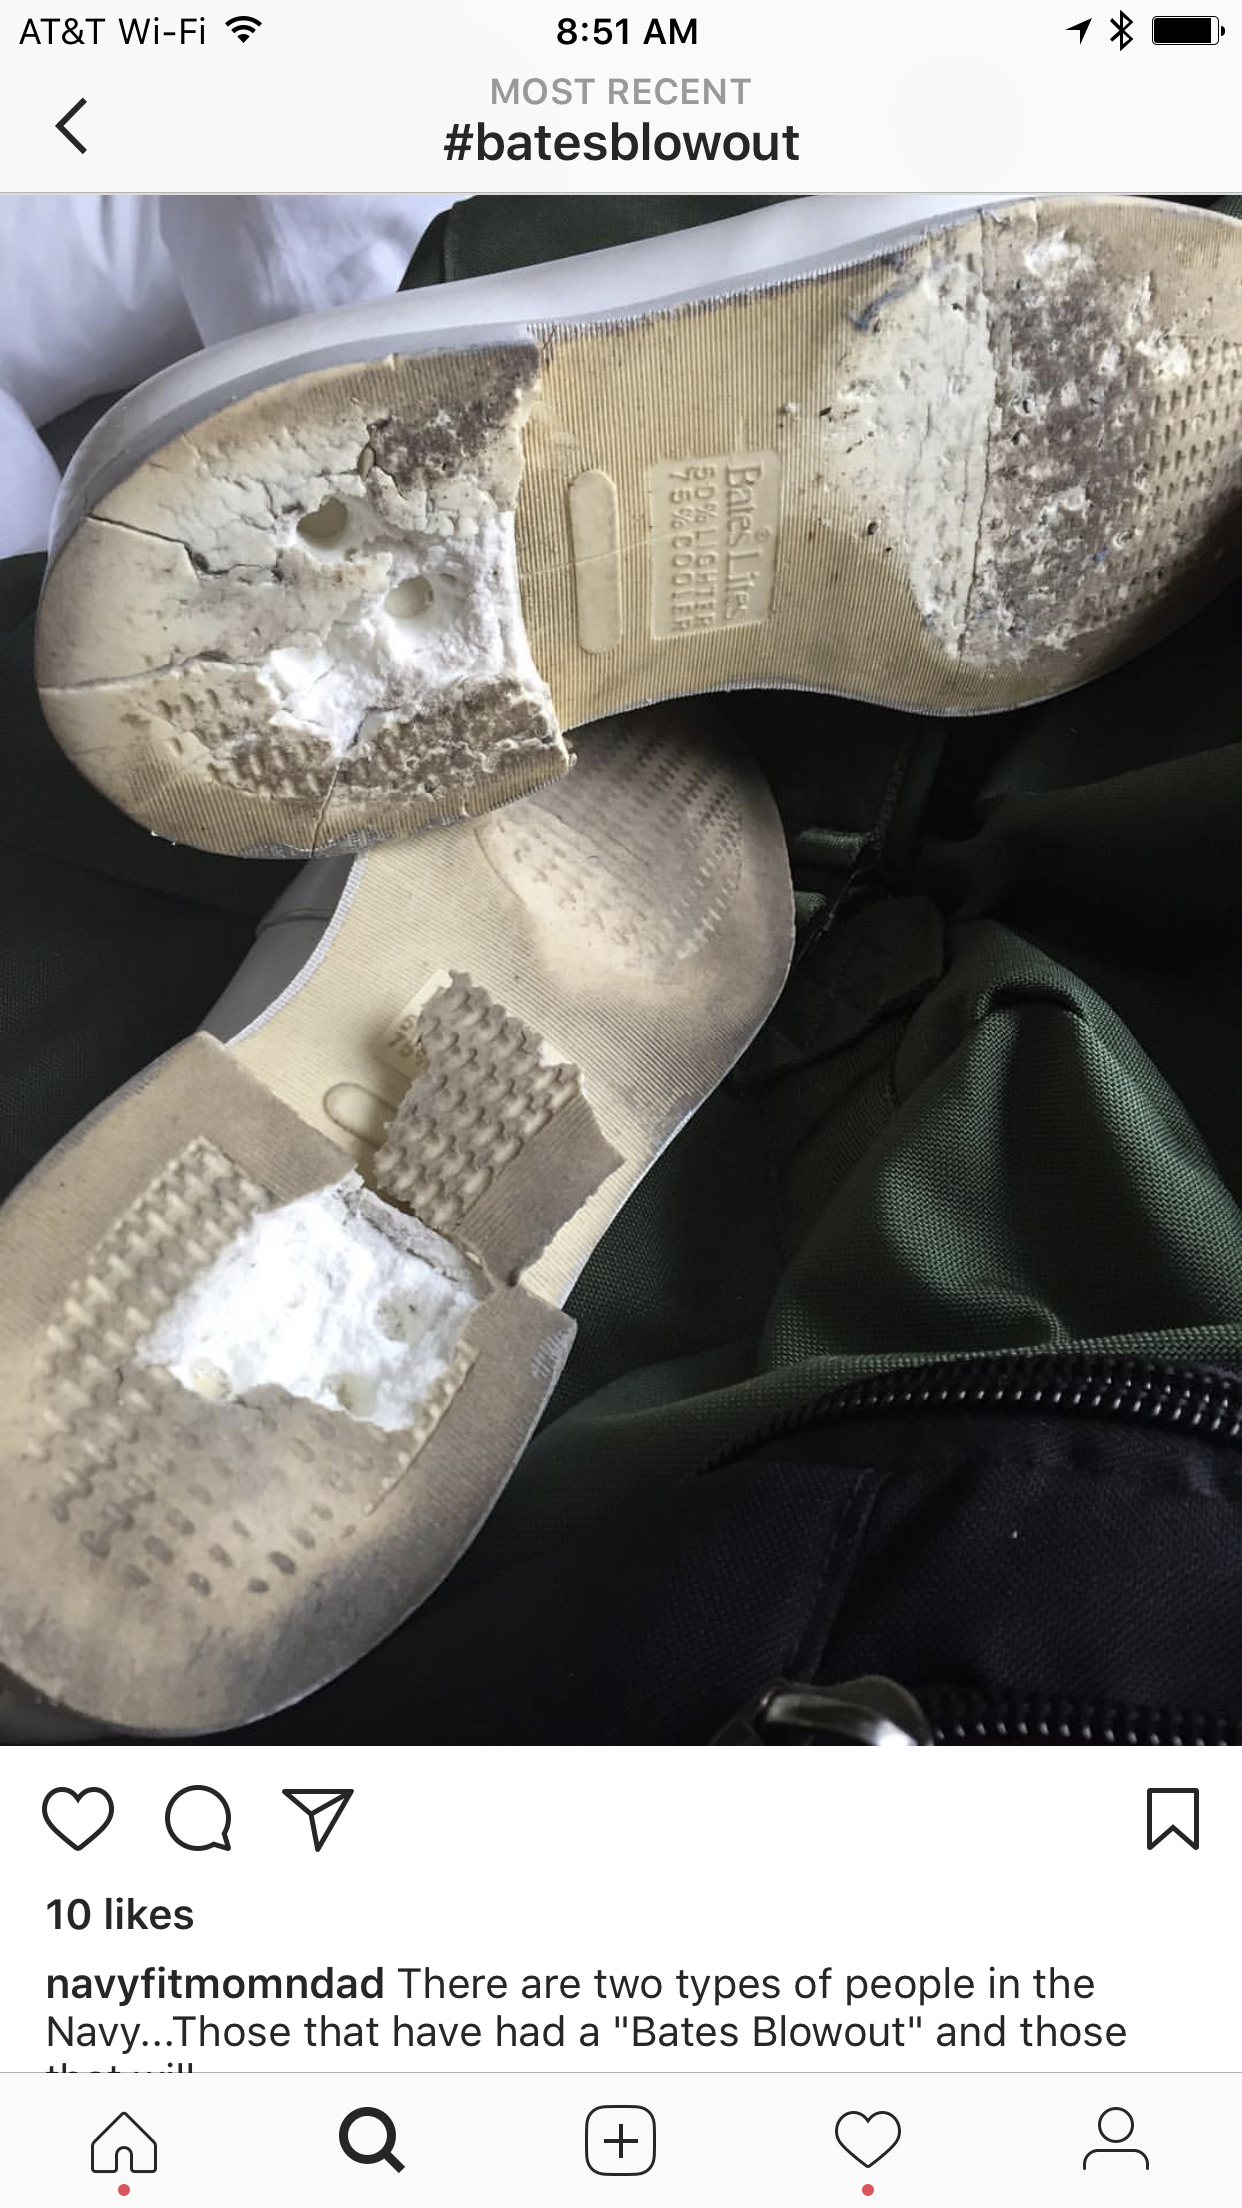 BatesBlowout: Sailors Frustrated With Uniform Shoe Failures